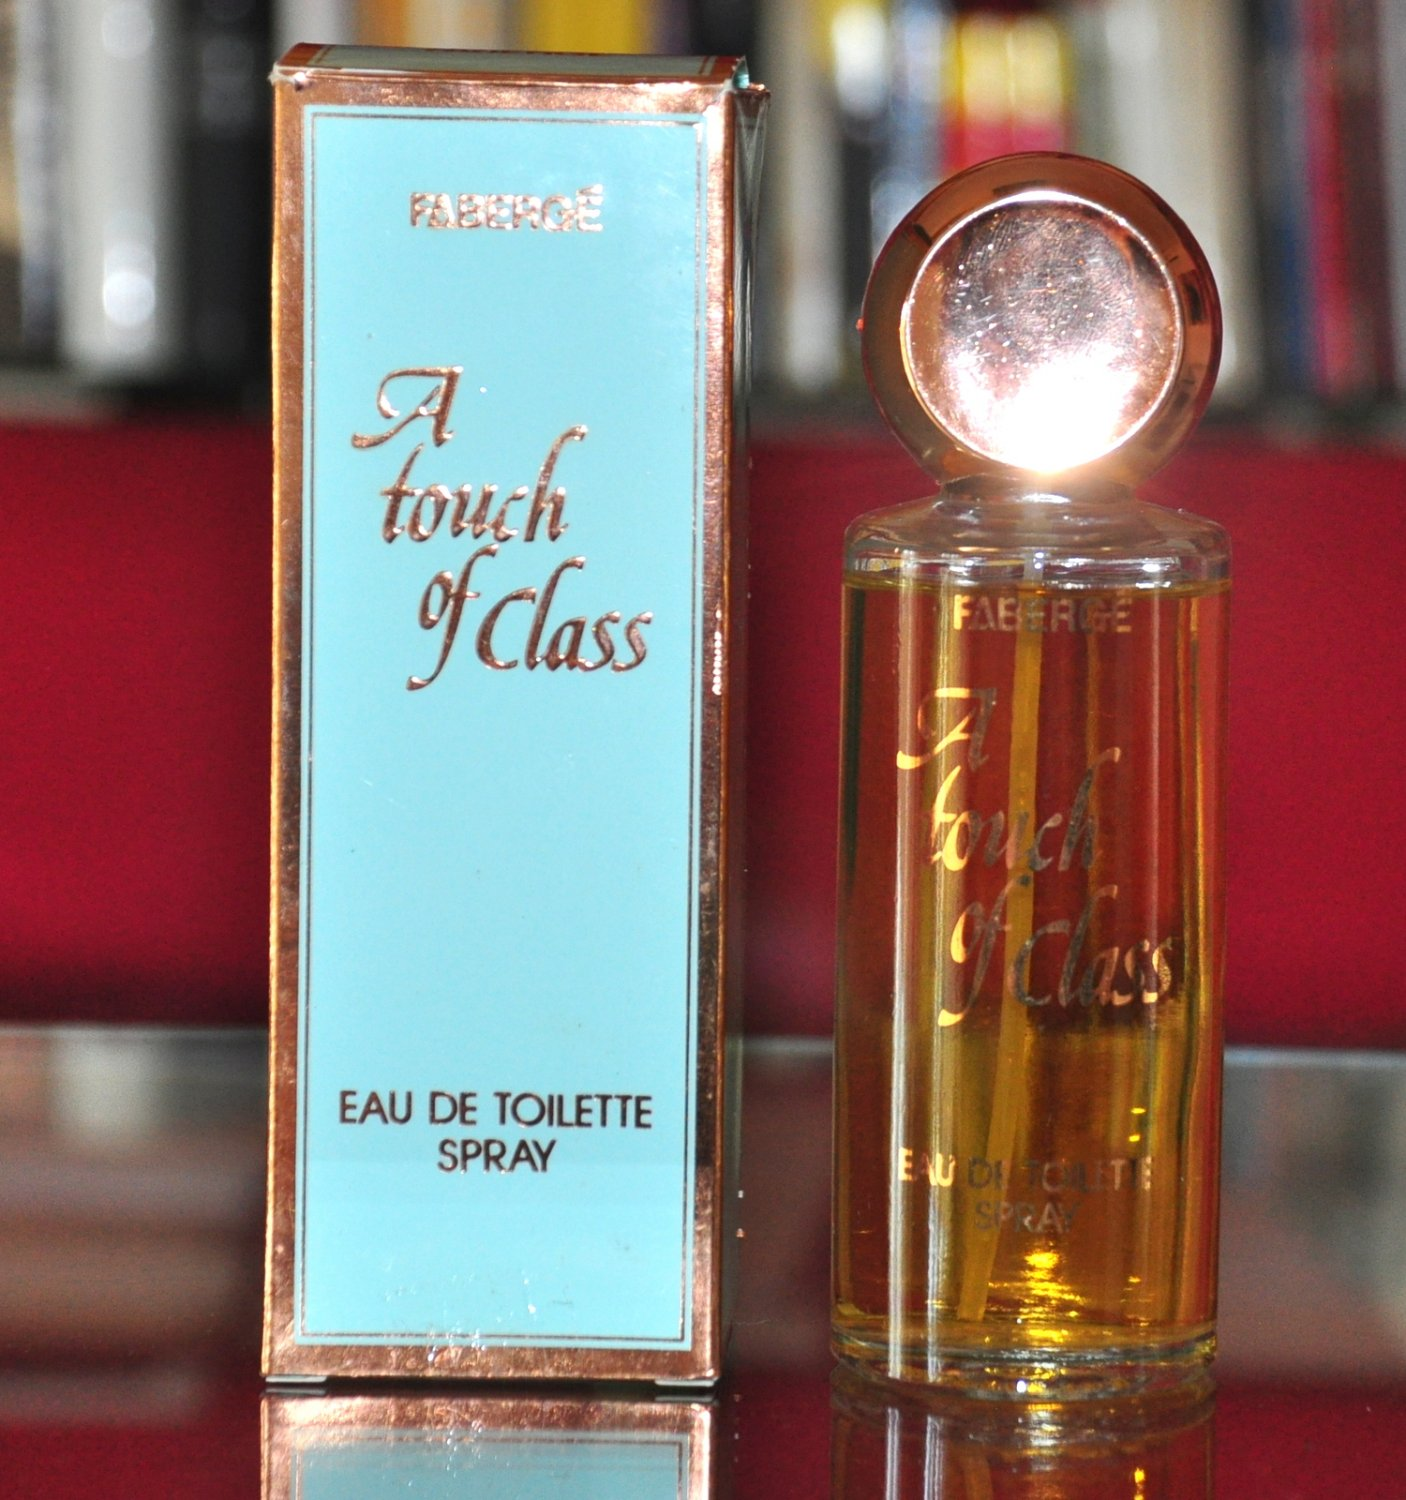 Fabergé a Touch Of Class Eau De Toilette Edt 100ML 3.4 Fl. Oz. For Woman Super Vintage Rare 1981